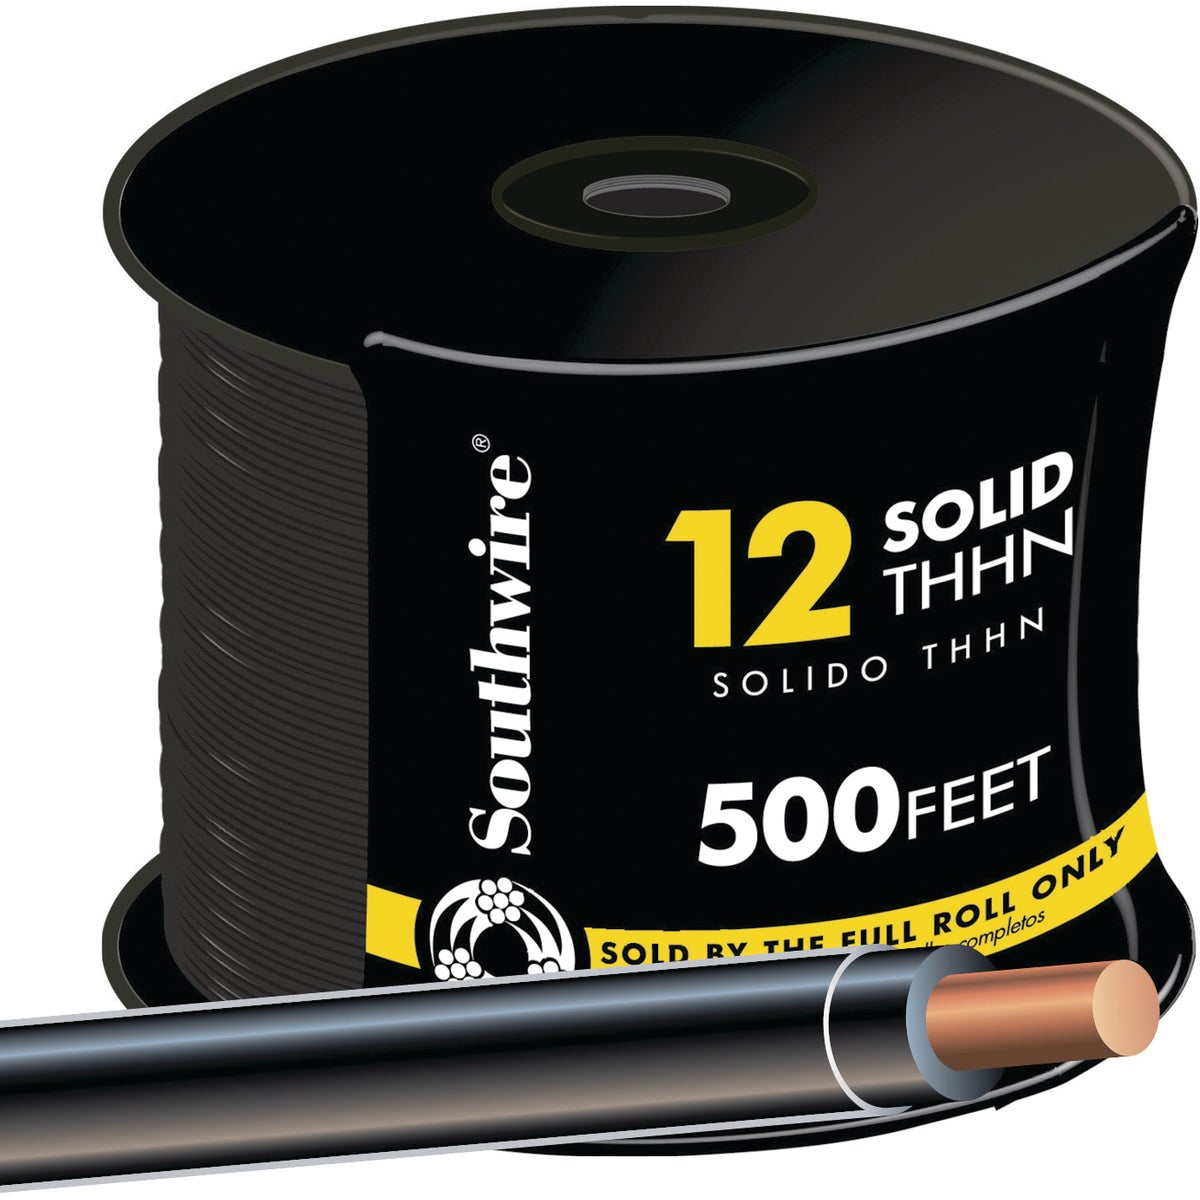 500' 12SOL BLK THHN WIRE - 11587358 by Southwire Company